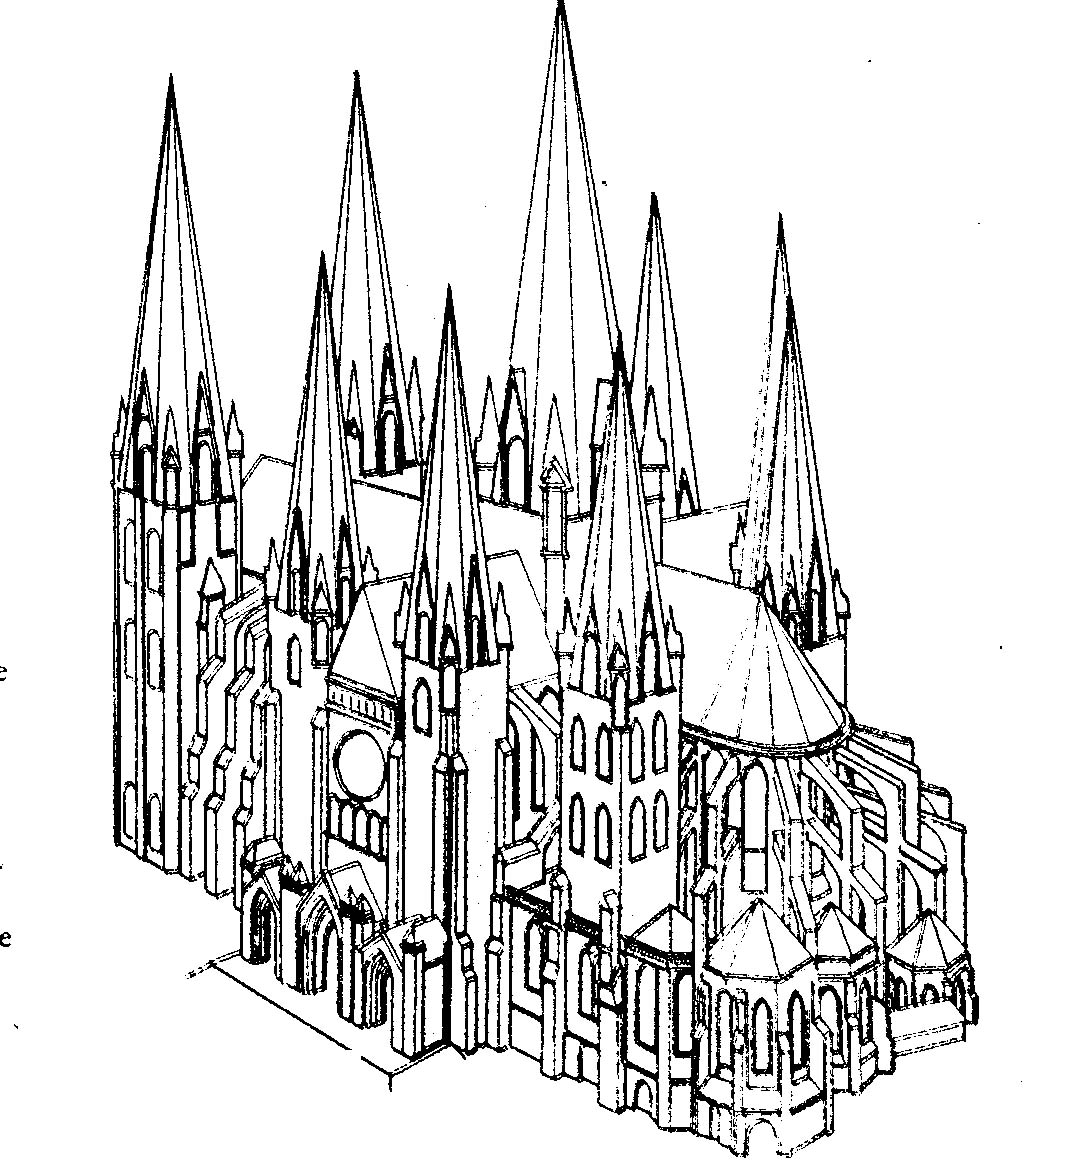 CATHEDRALS 1140 1300